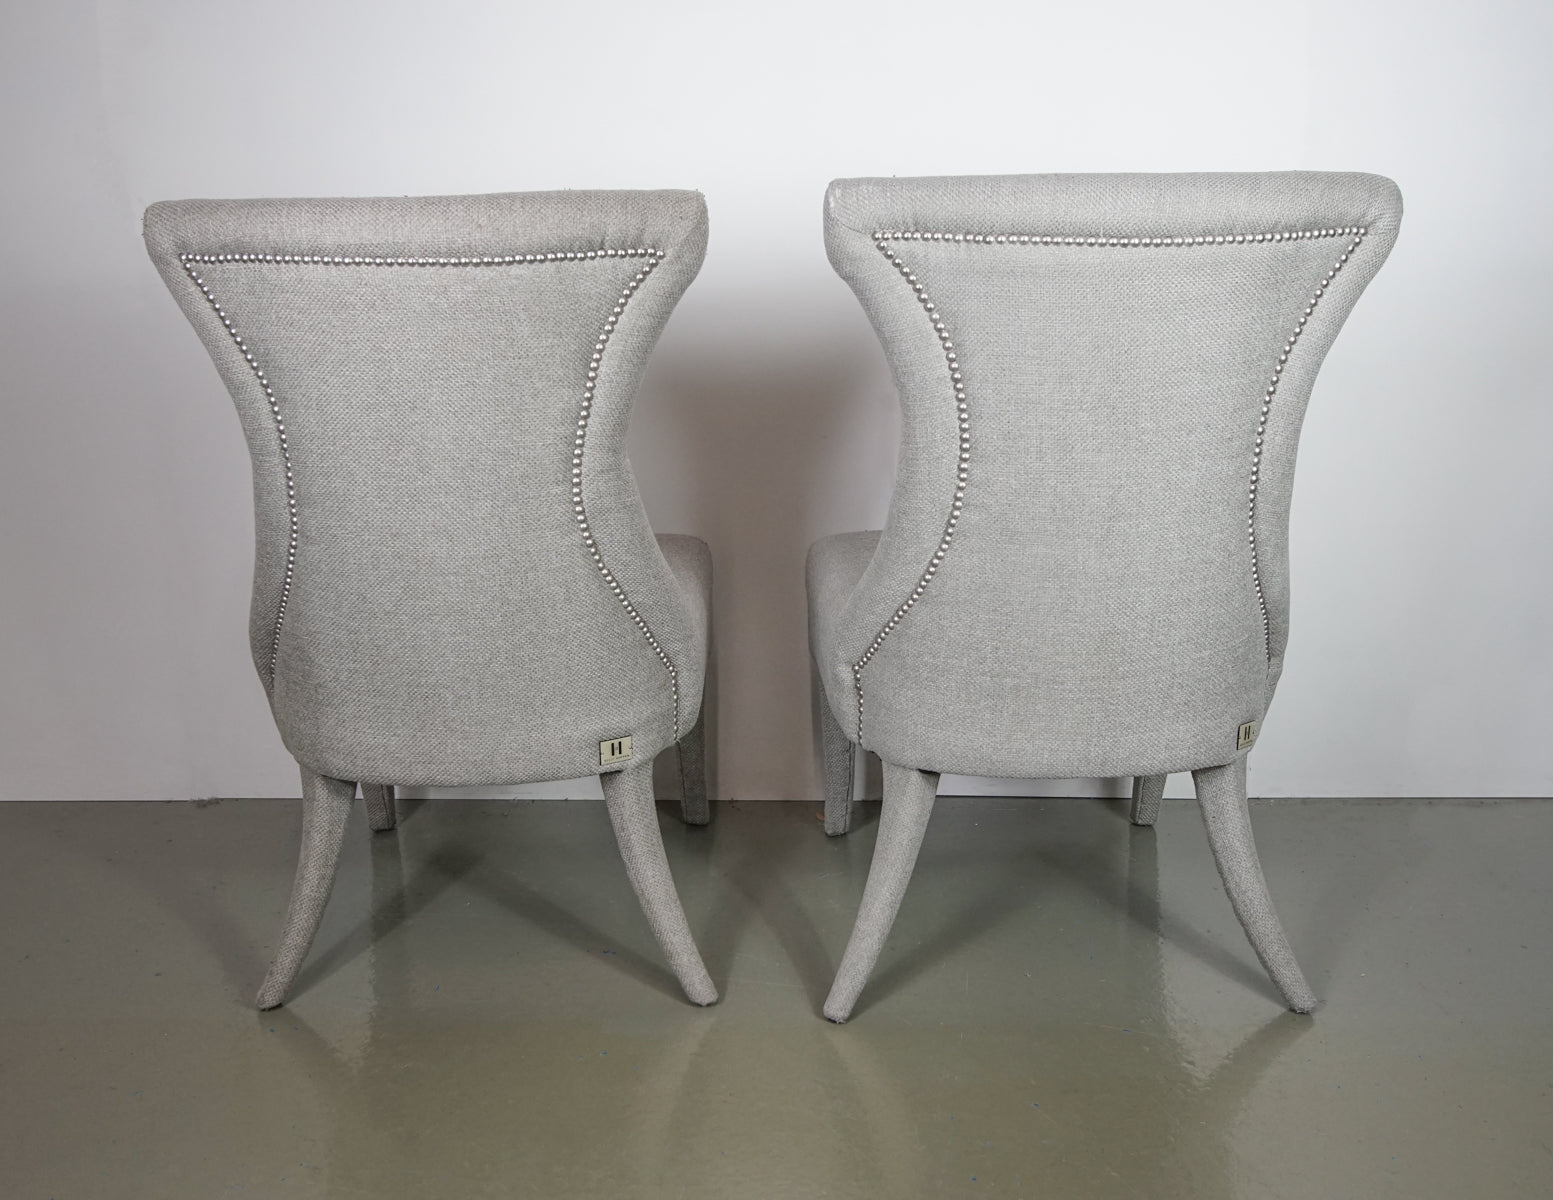 Kelly Hoppen Chairs (2 units)